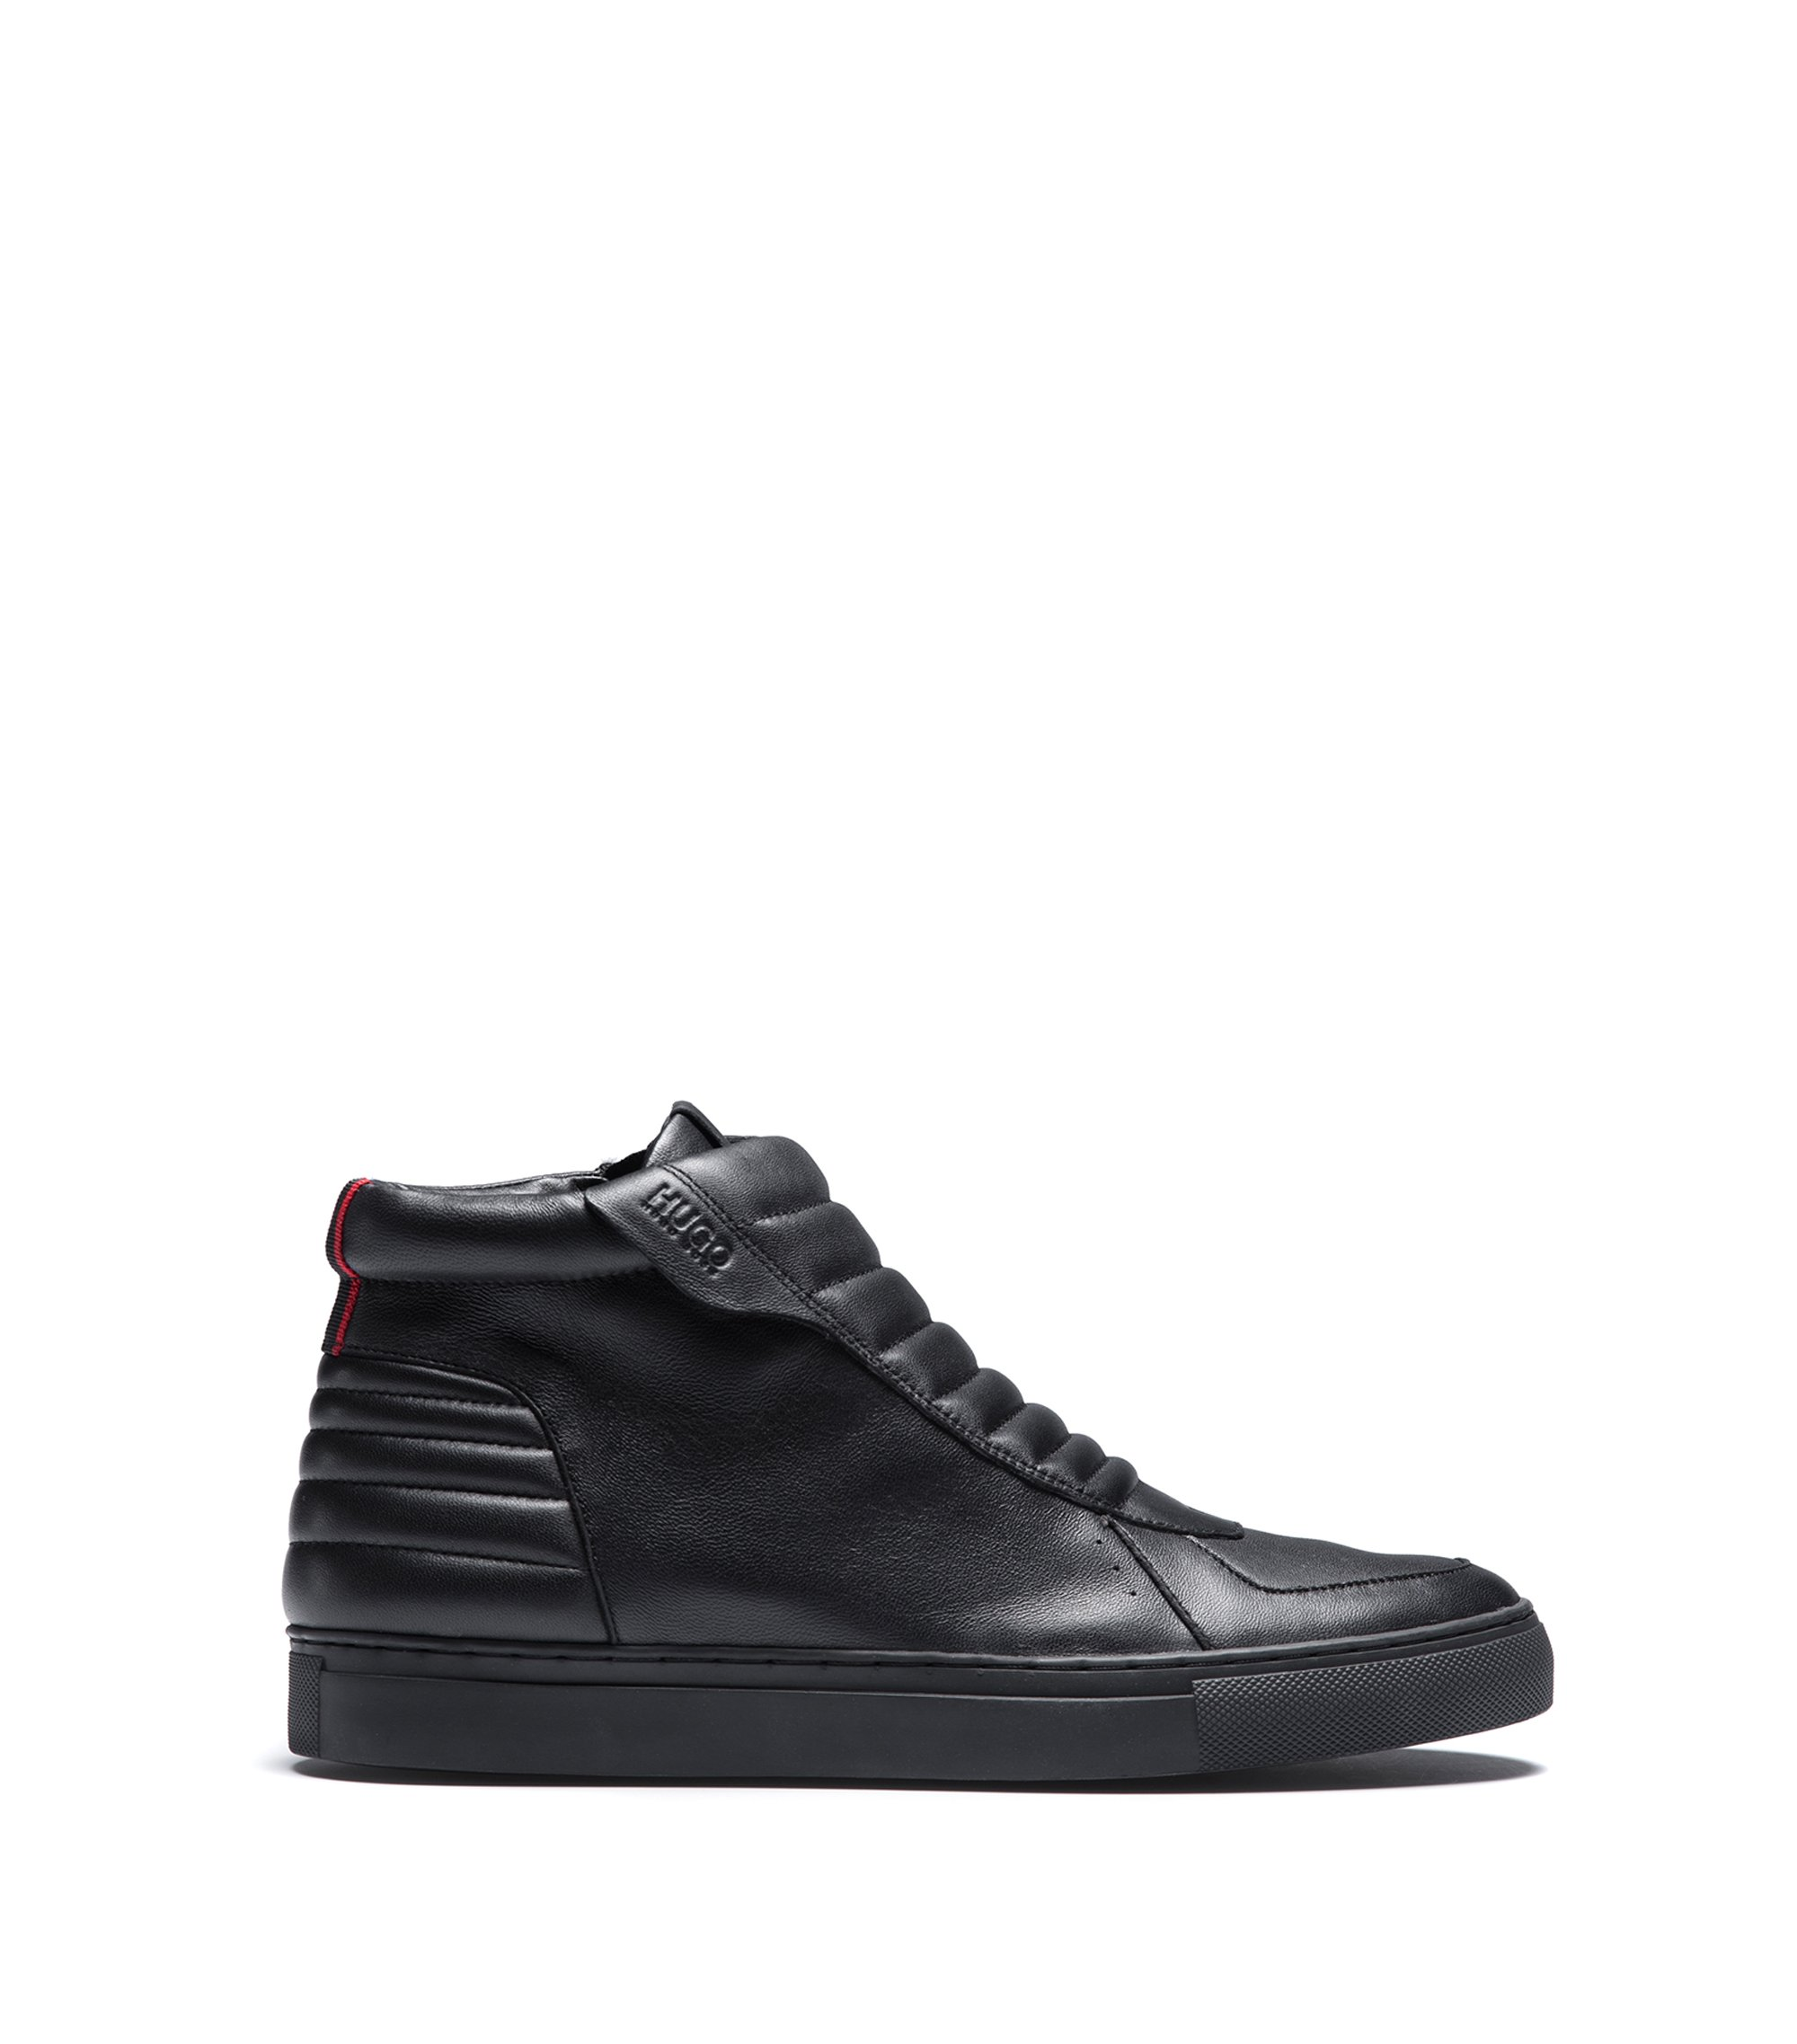 Sneakers high-top con zip in pelle nappa imbottita, Nero